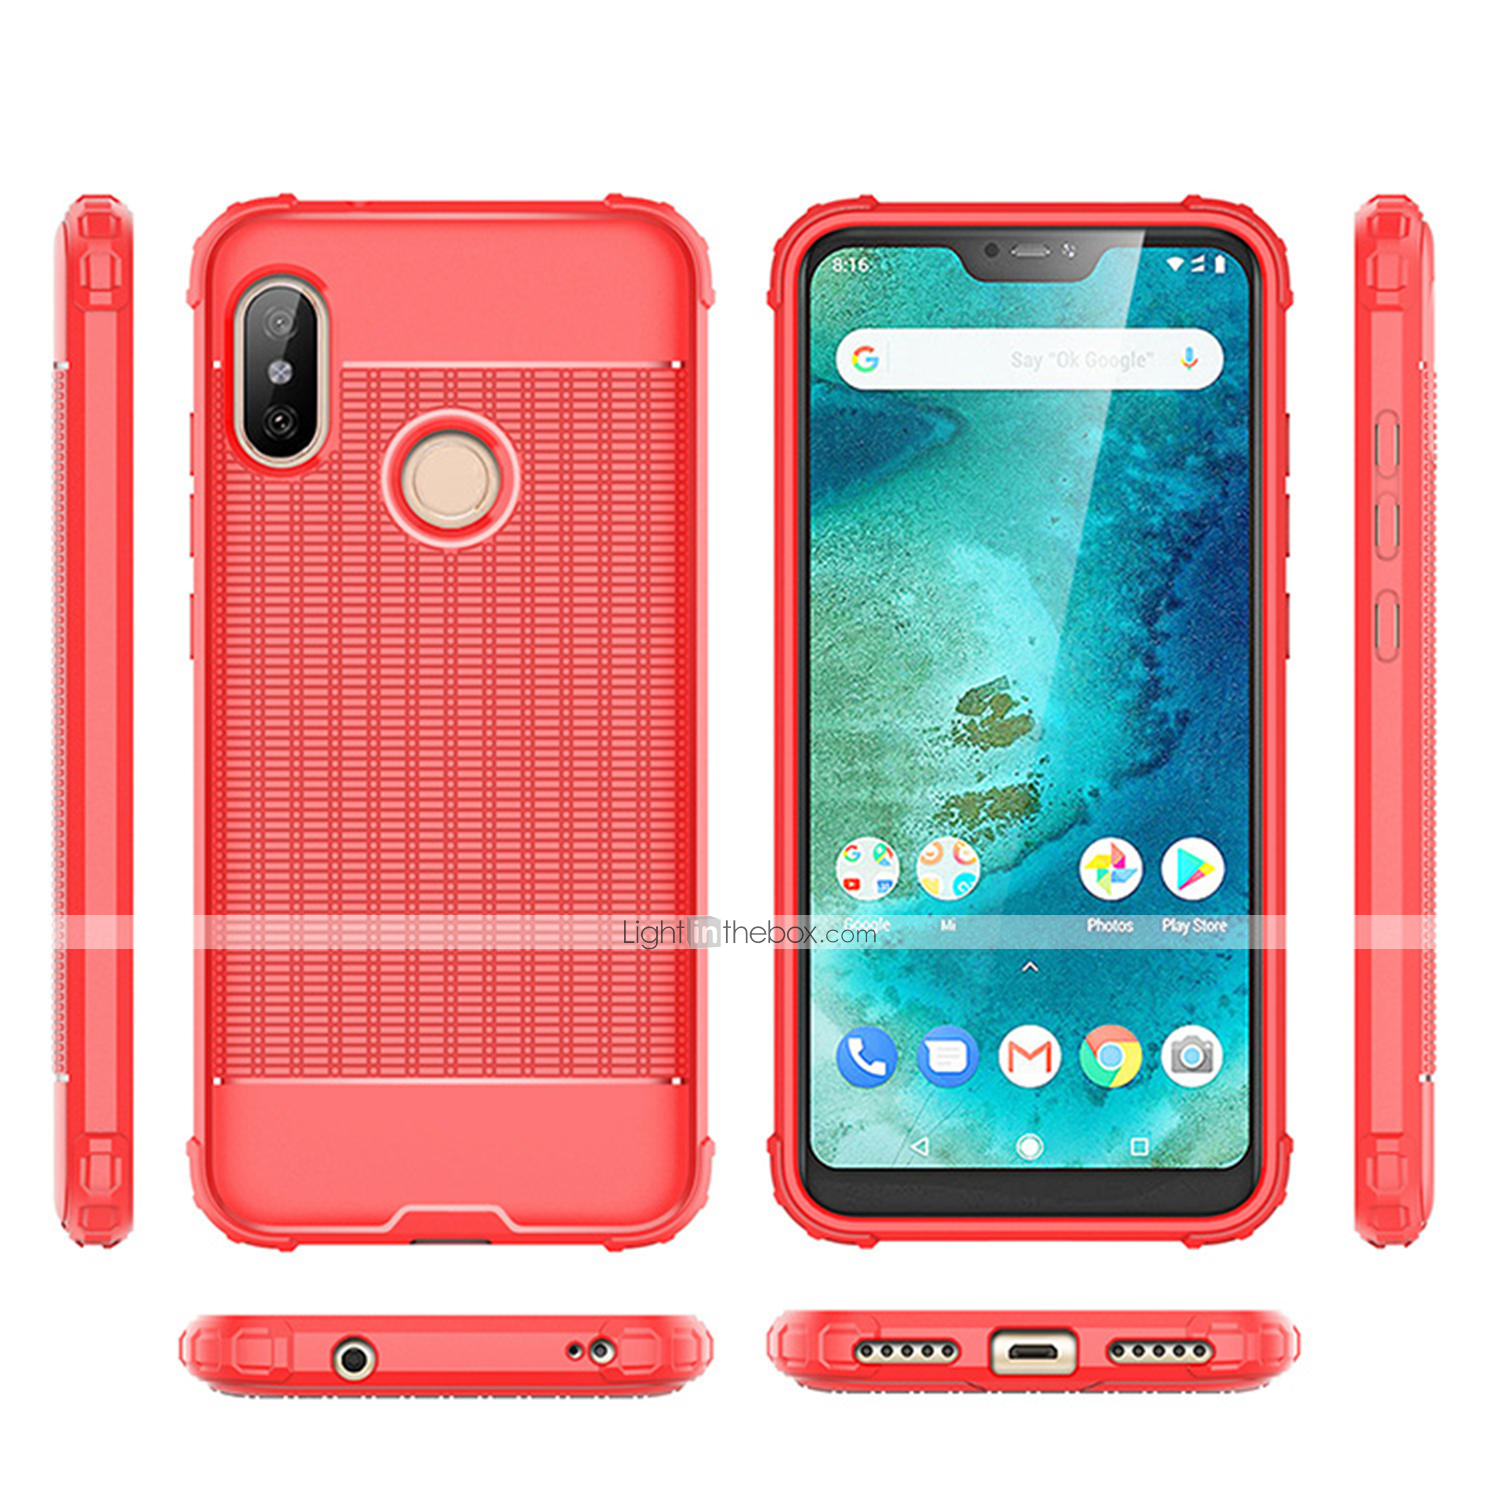 Case For Xiaomi Redmi Note 5 Pro / Xiaomi Redmi 6 Pro Shockproof Back Cover Solid Colored Soft TPU for Xiaomi Redmi Note 5 Pro / Xiaomi Redmi 6 Pro / Redmi ...